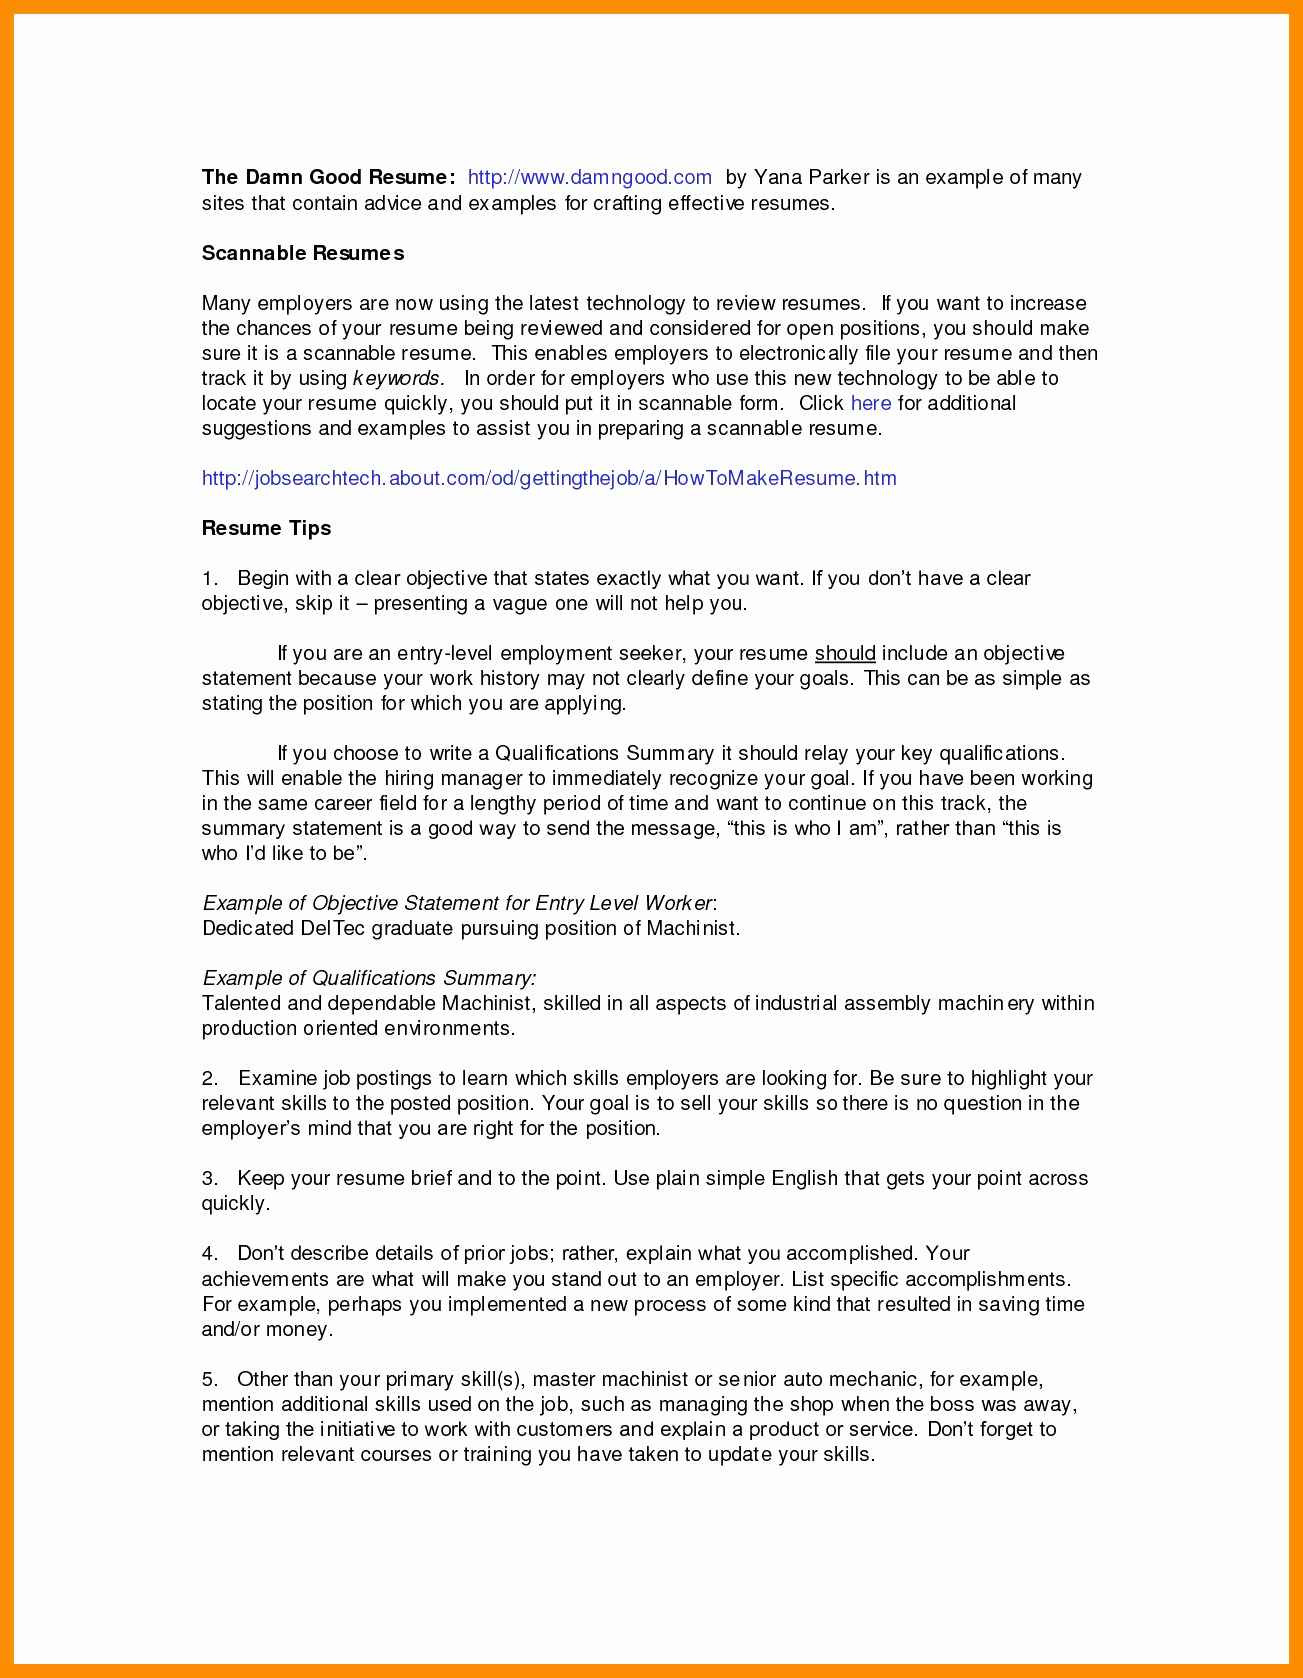 car mechanic education resume example-Car Mechanic Education Resume Inspirational Child Care Resume Templates Free Lovely Child Care Provider Resume 7-h